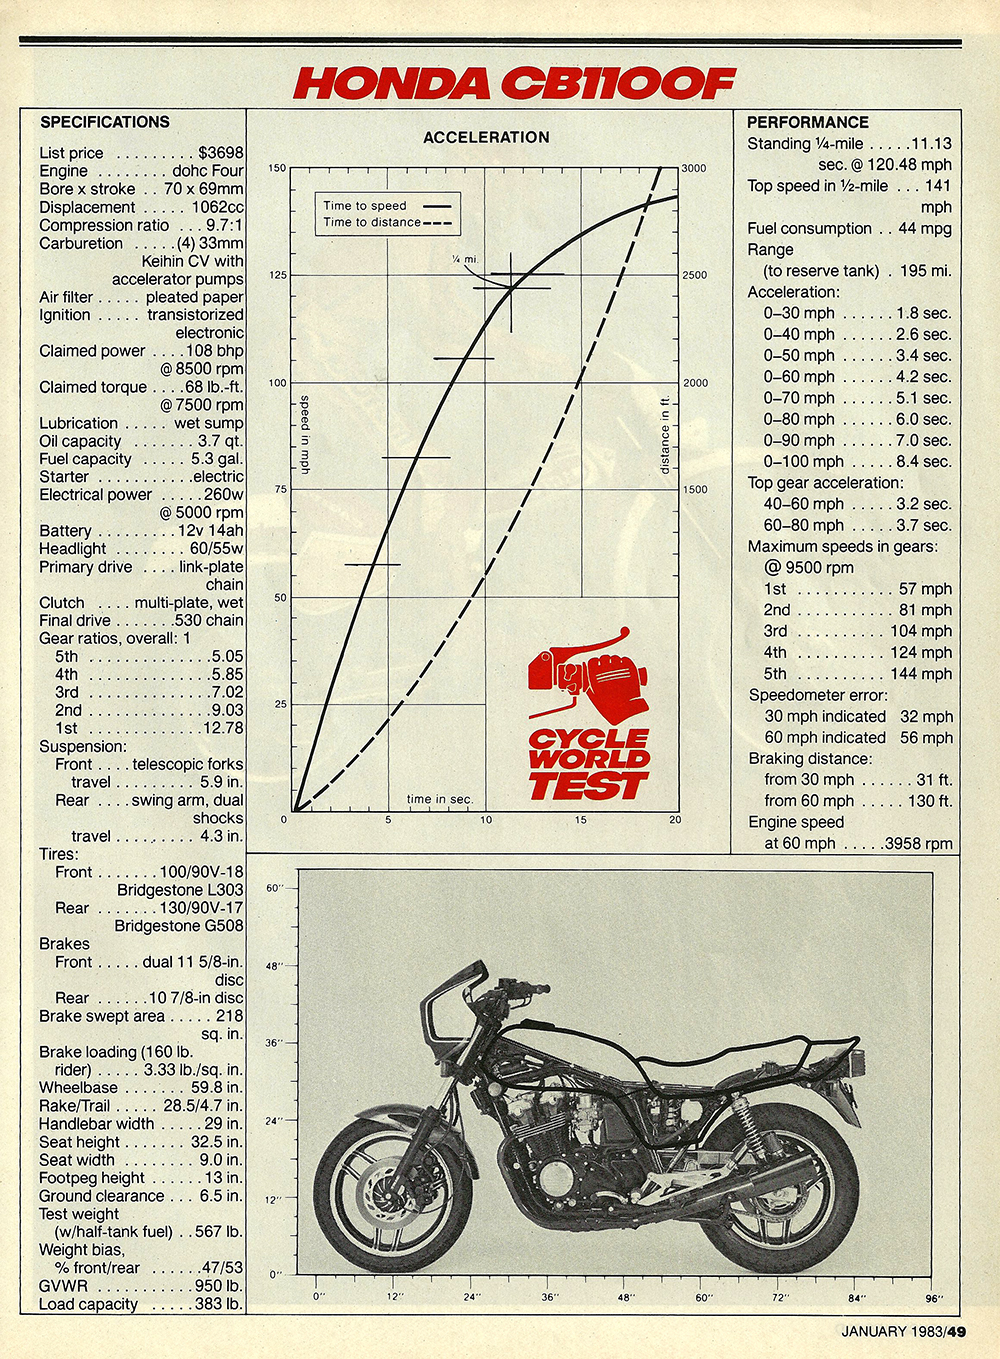 1983 Honda CB1100F road test 06.jpg